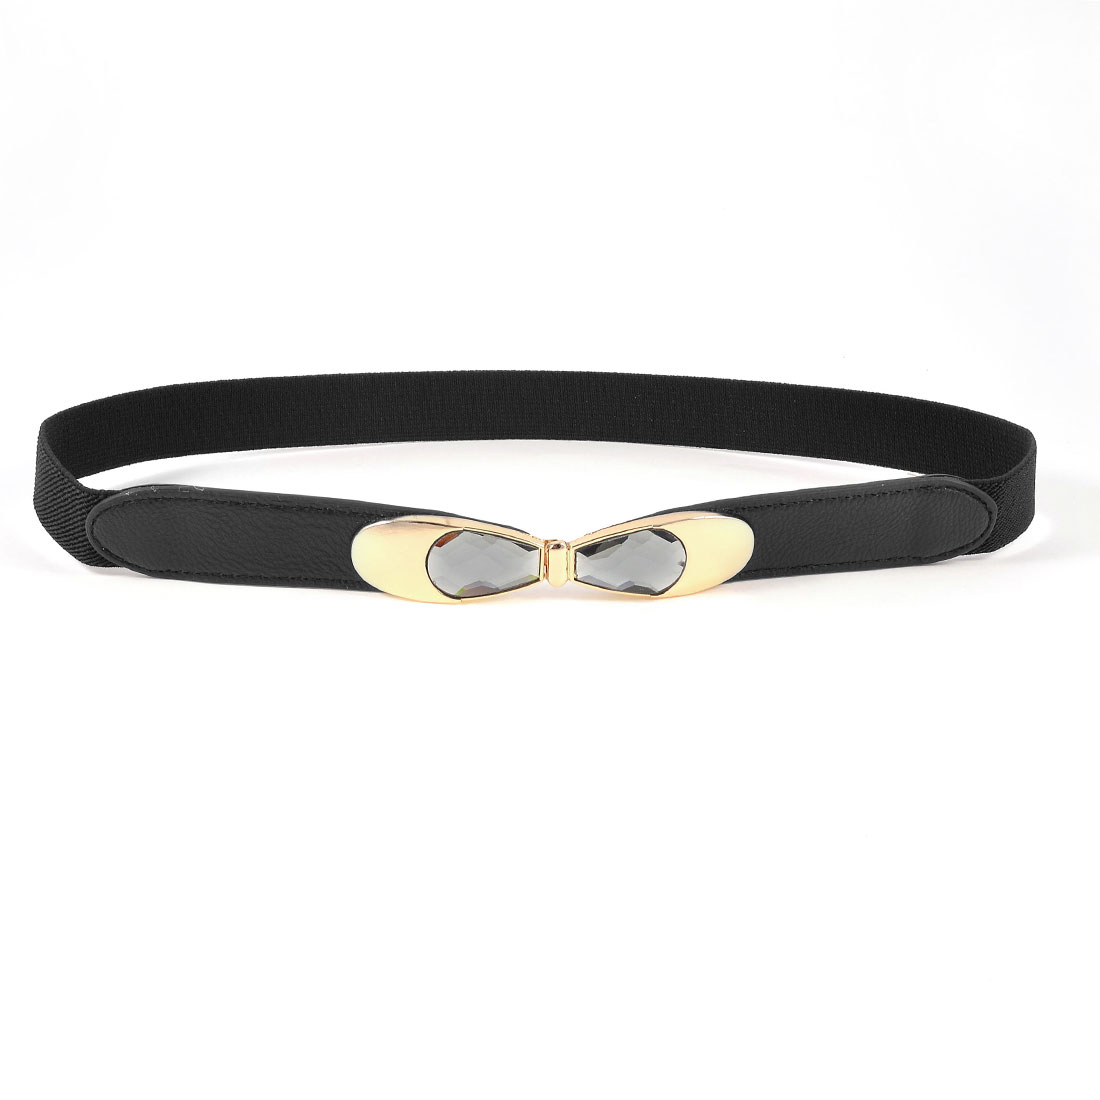 Glear Grey Polyhedral Crystal Inlaid Buckle Black Stretch Textured Cinch Belt